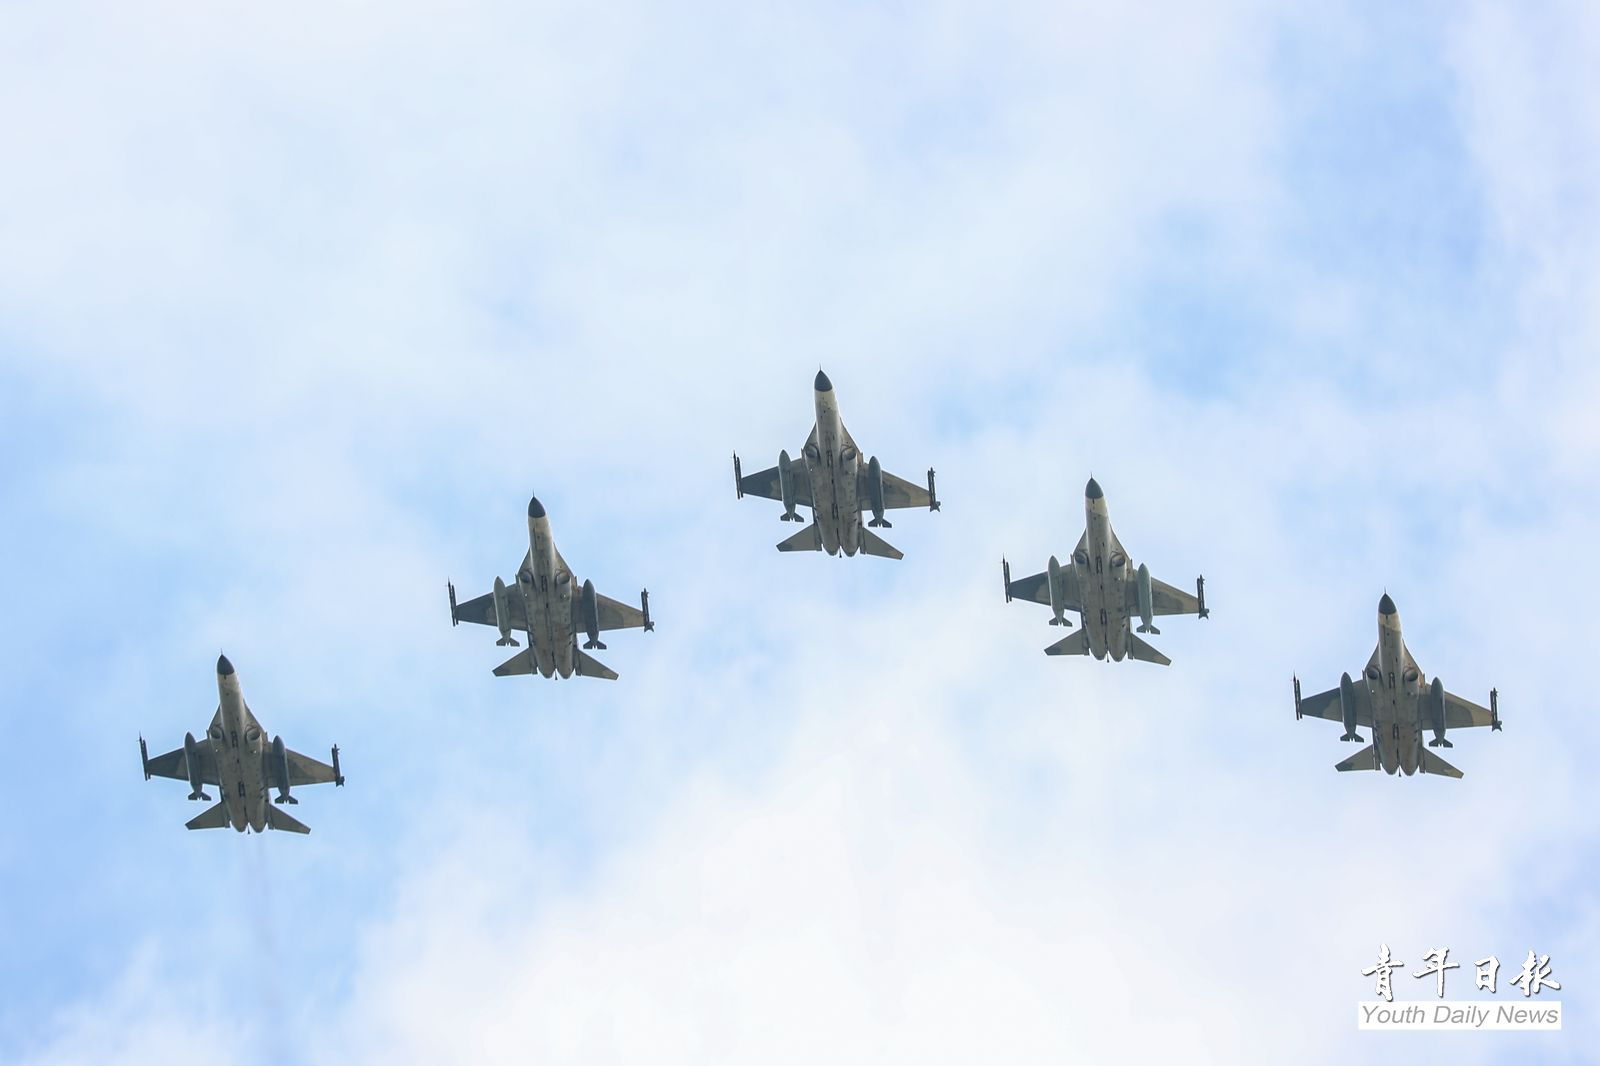 F-16 MSC's launch manifests Taiwan's aerospace industry eyeing the world.